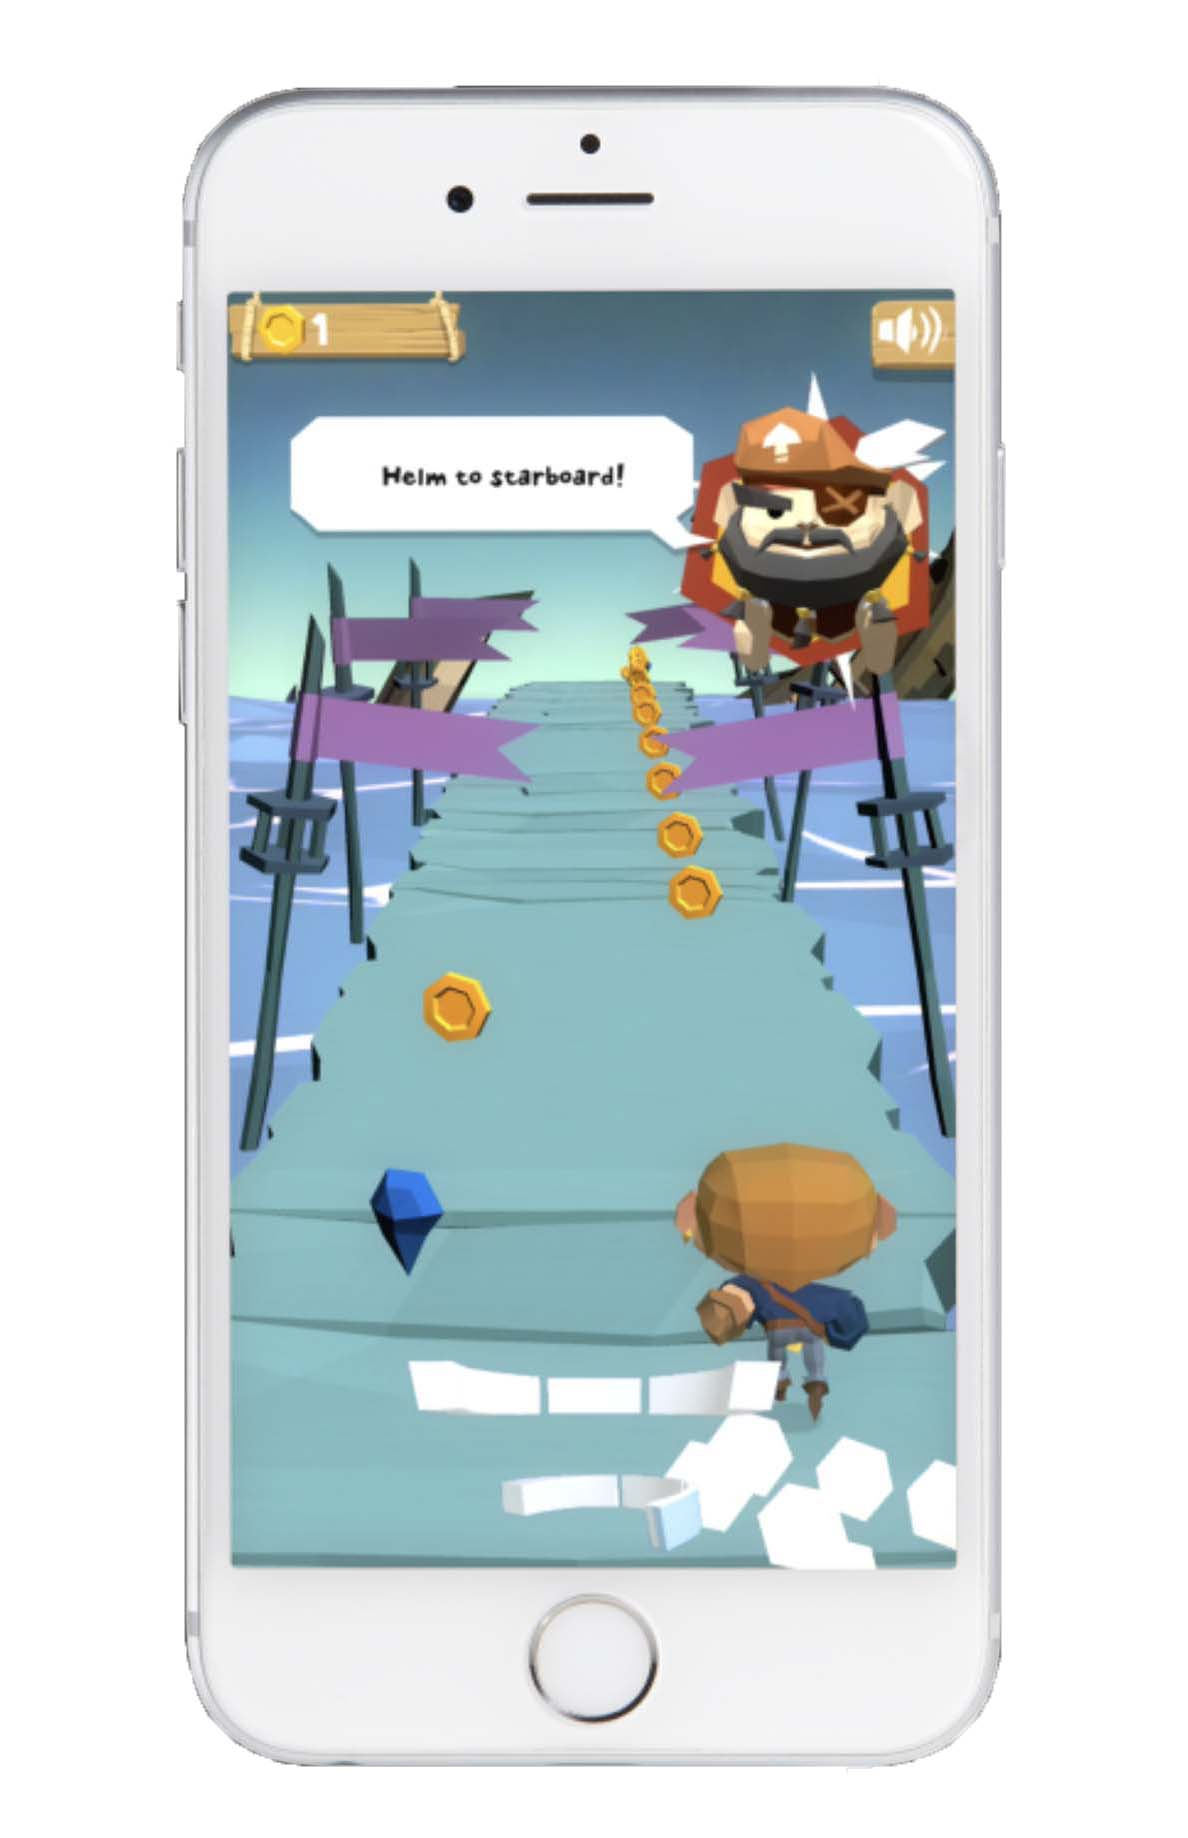 Colgate Connect App Pirate Game